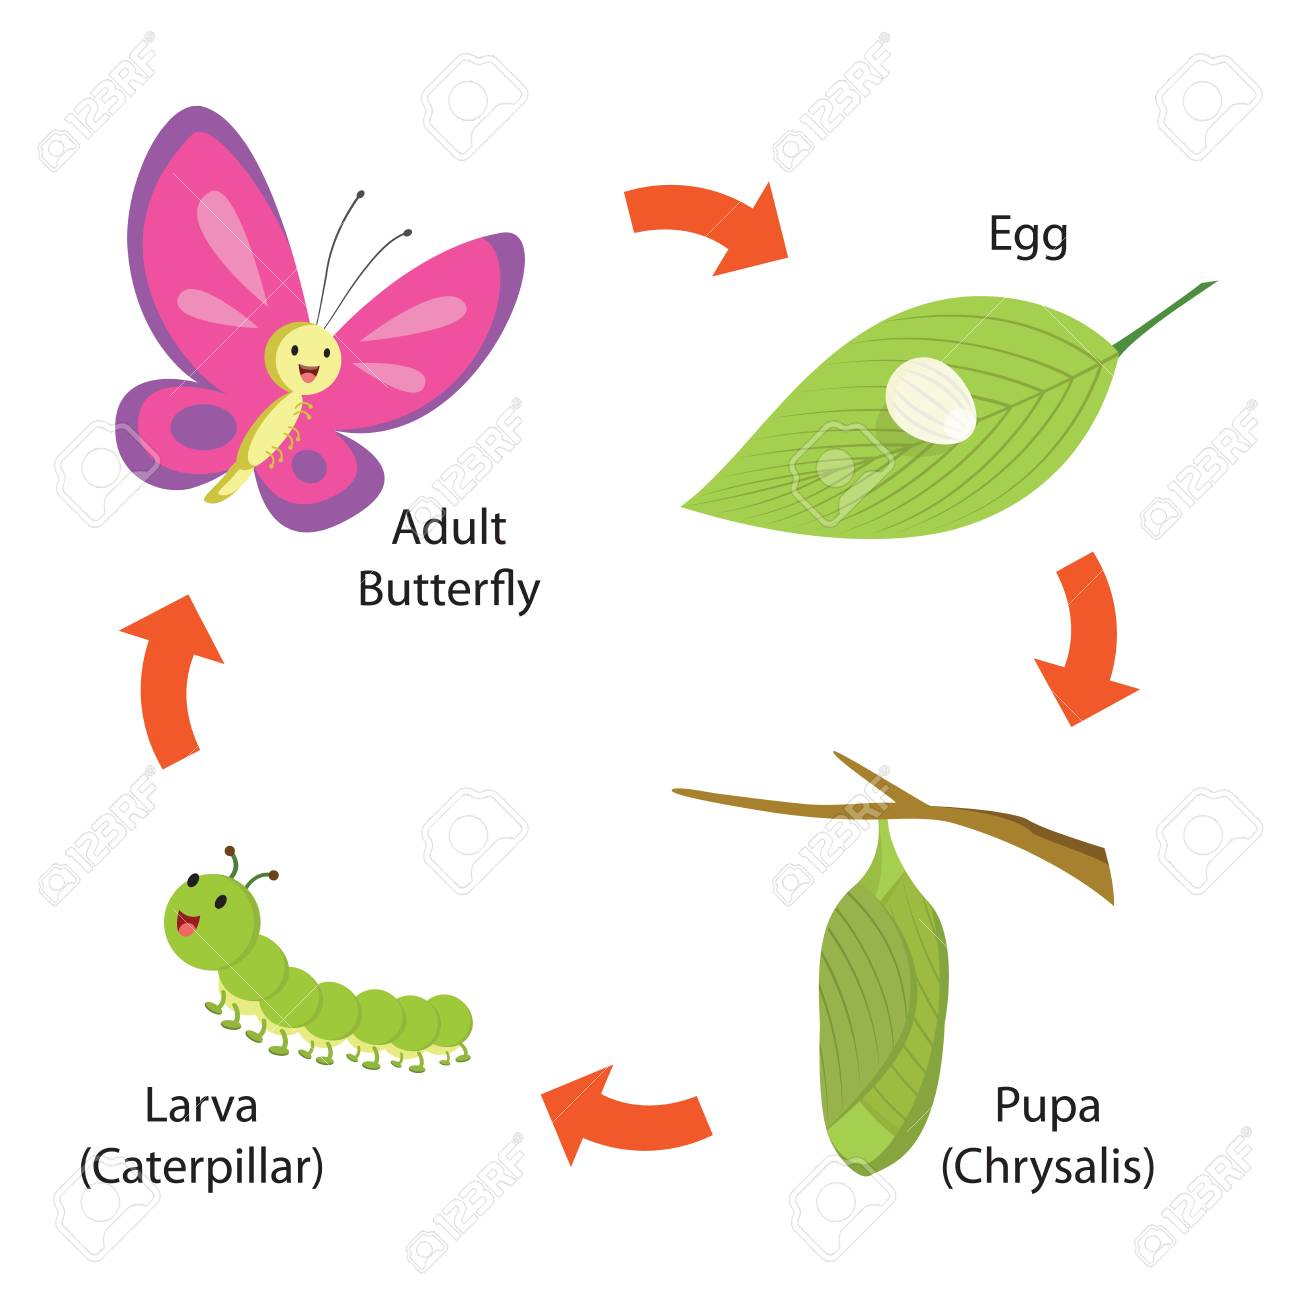 Vector illustration of life cycle of a butterfly - 89001448